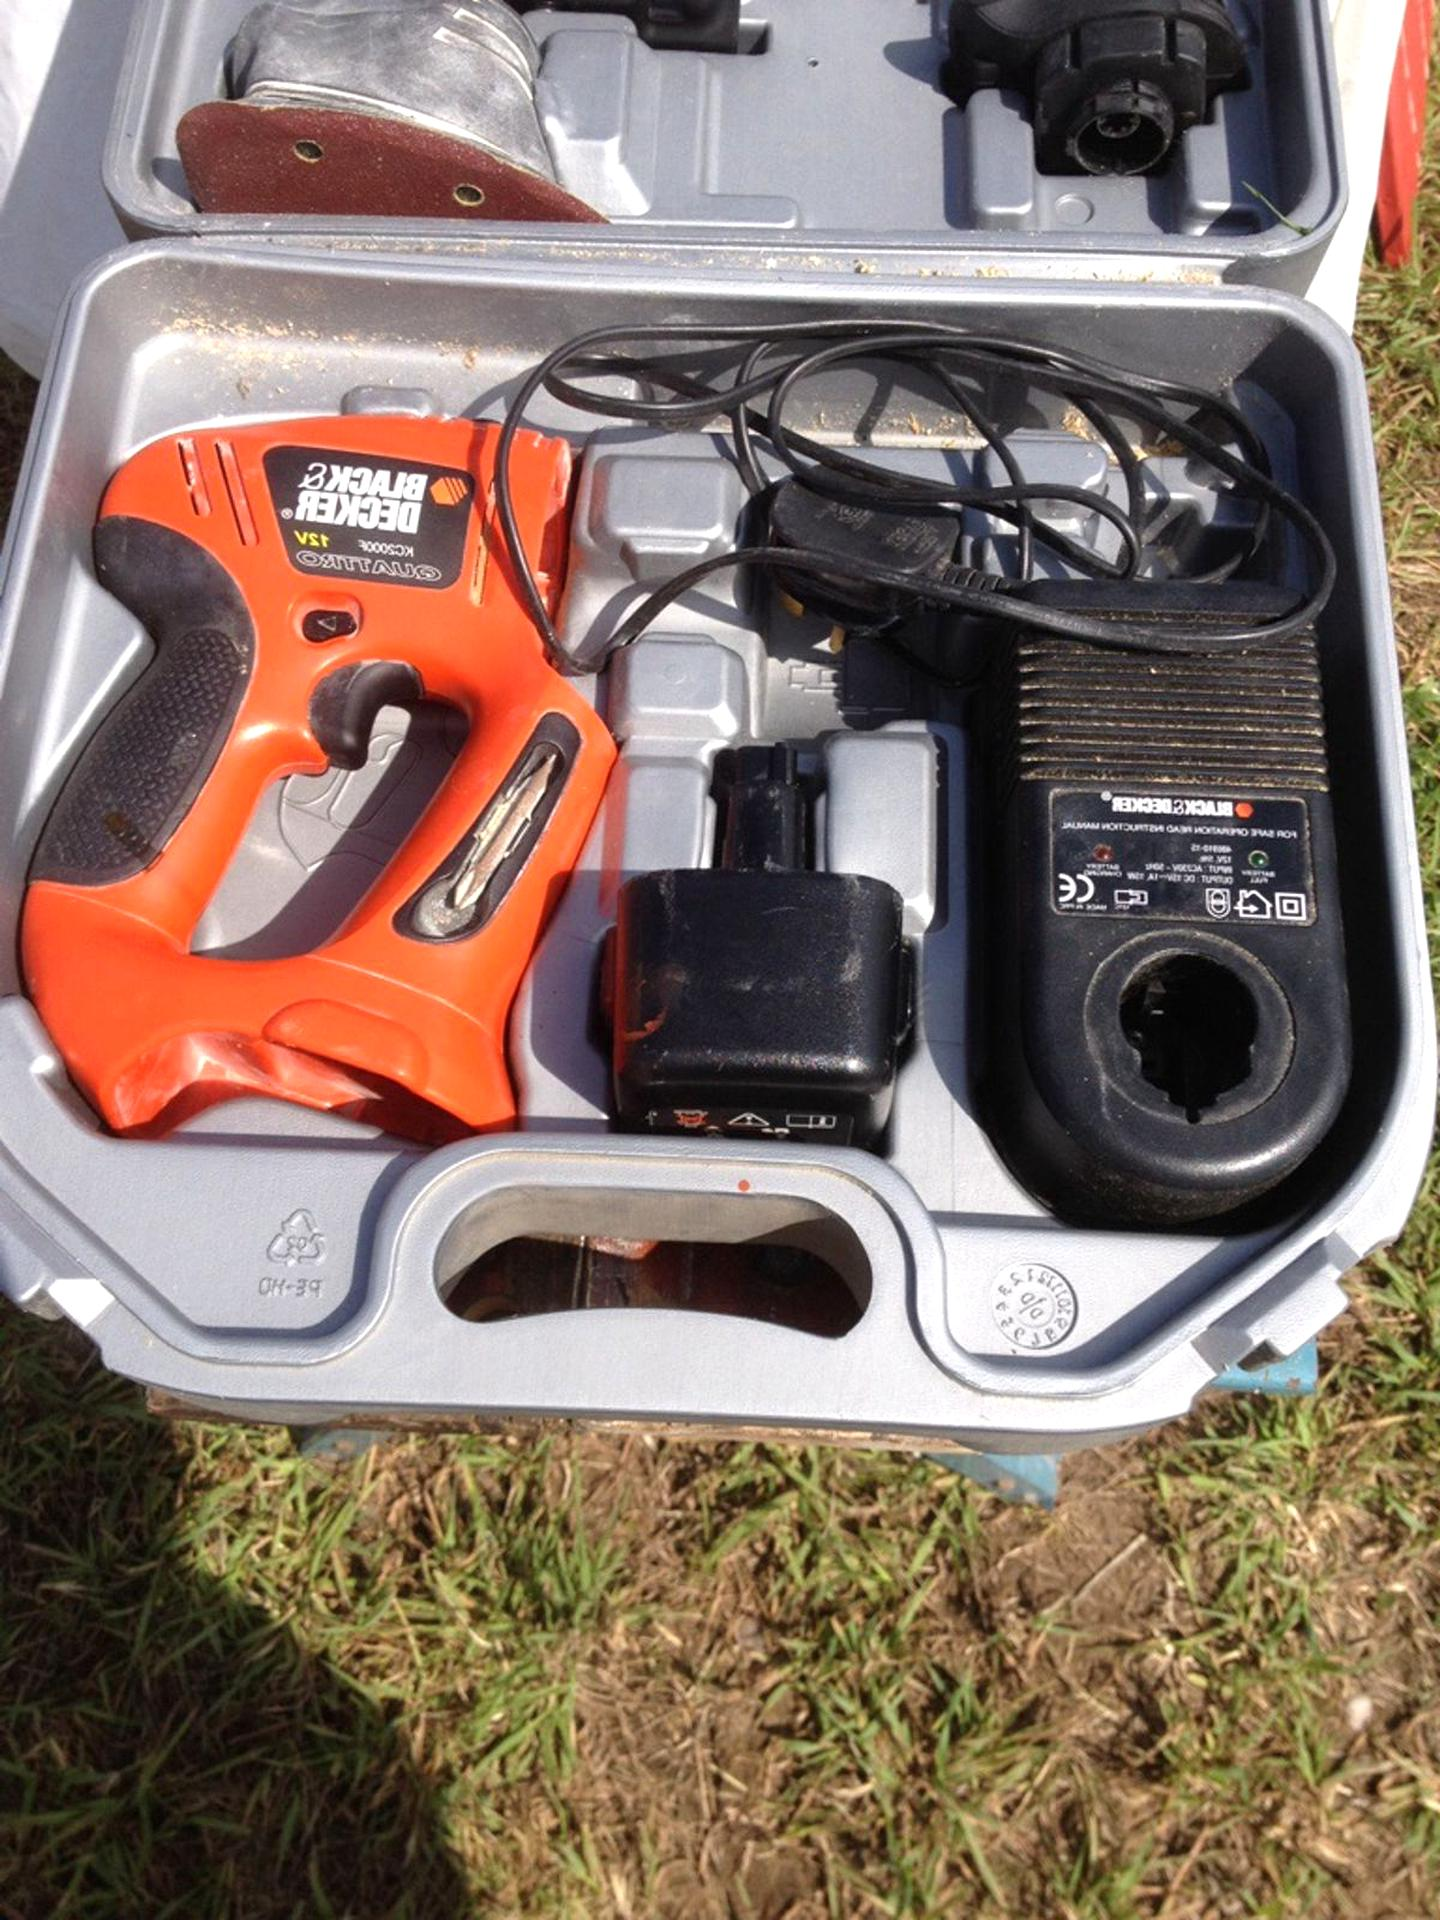 quattro black decker d'occasion